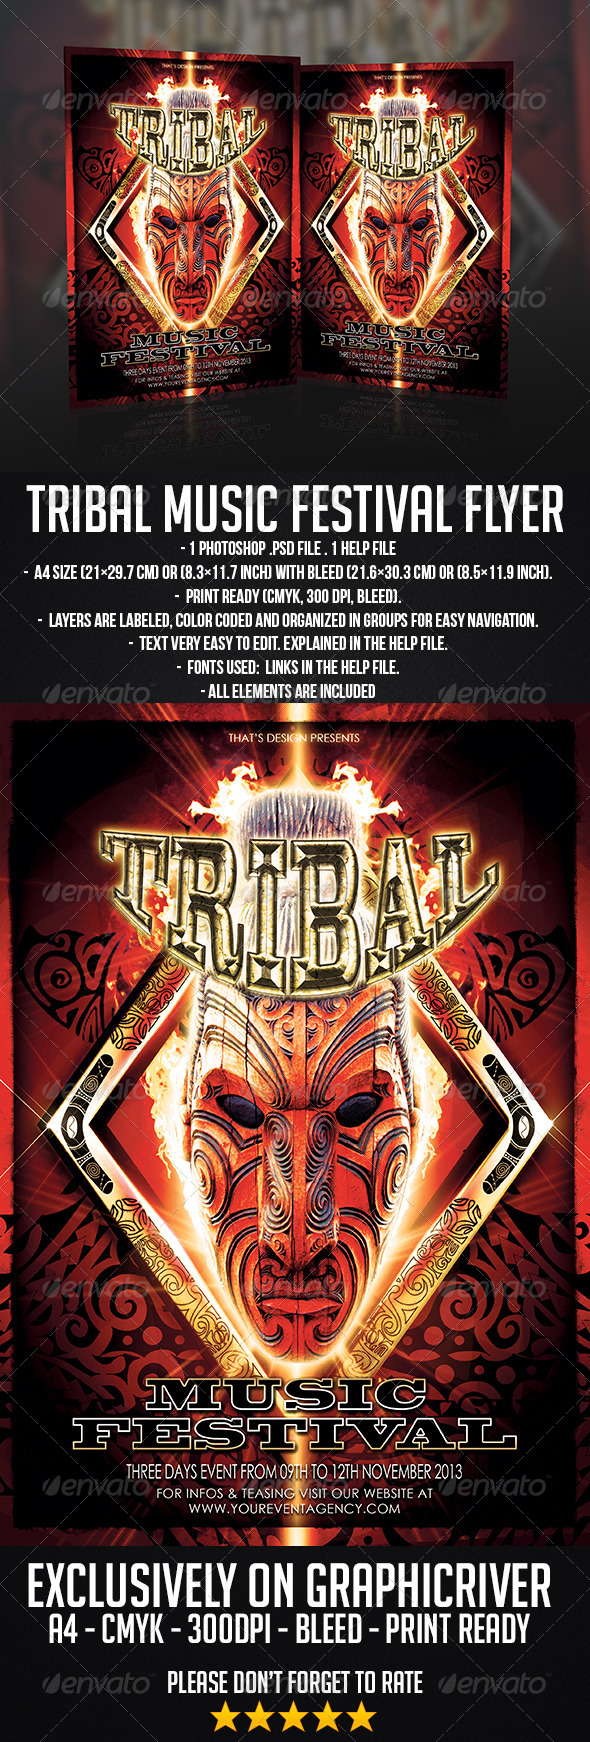 Tribal Music Festival Flyer Template - Concerts Events